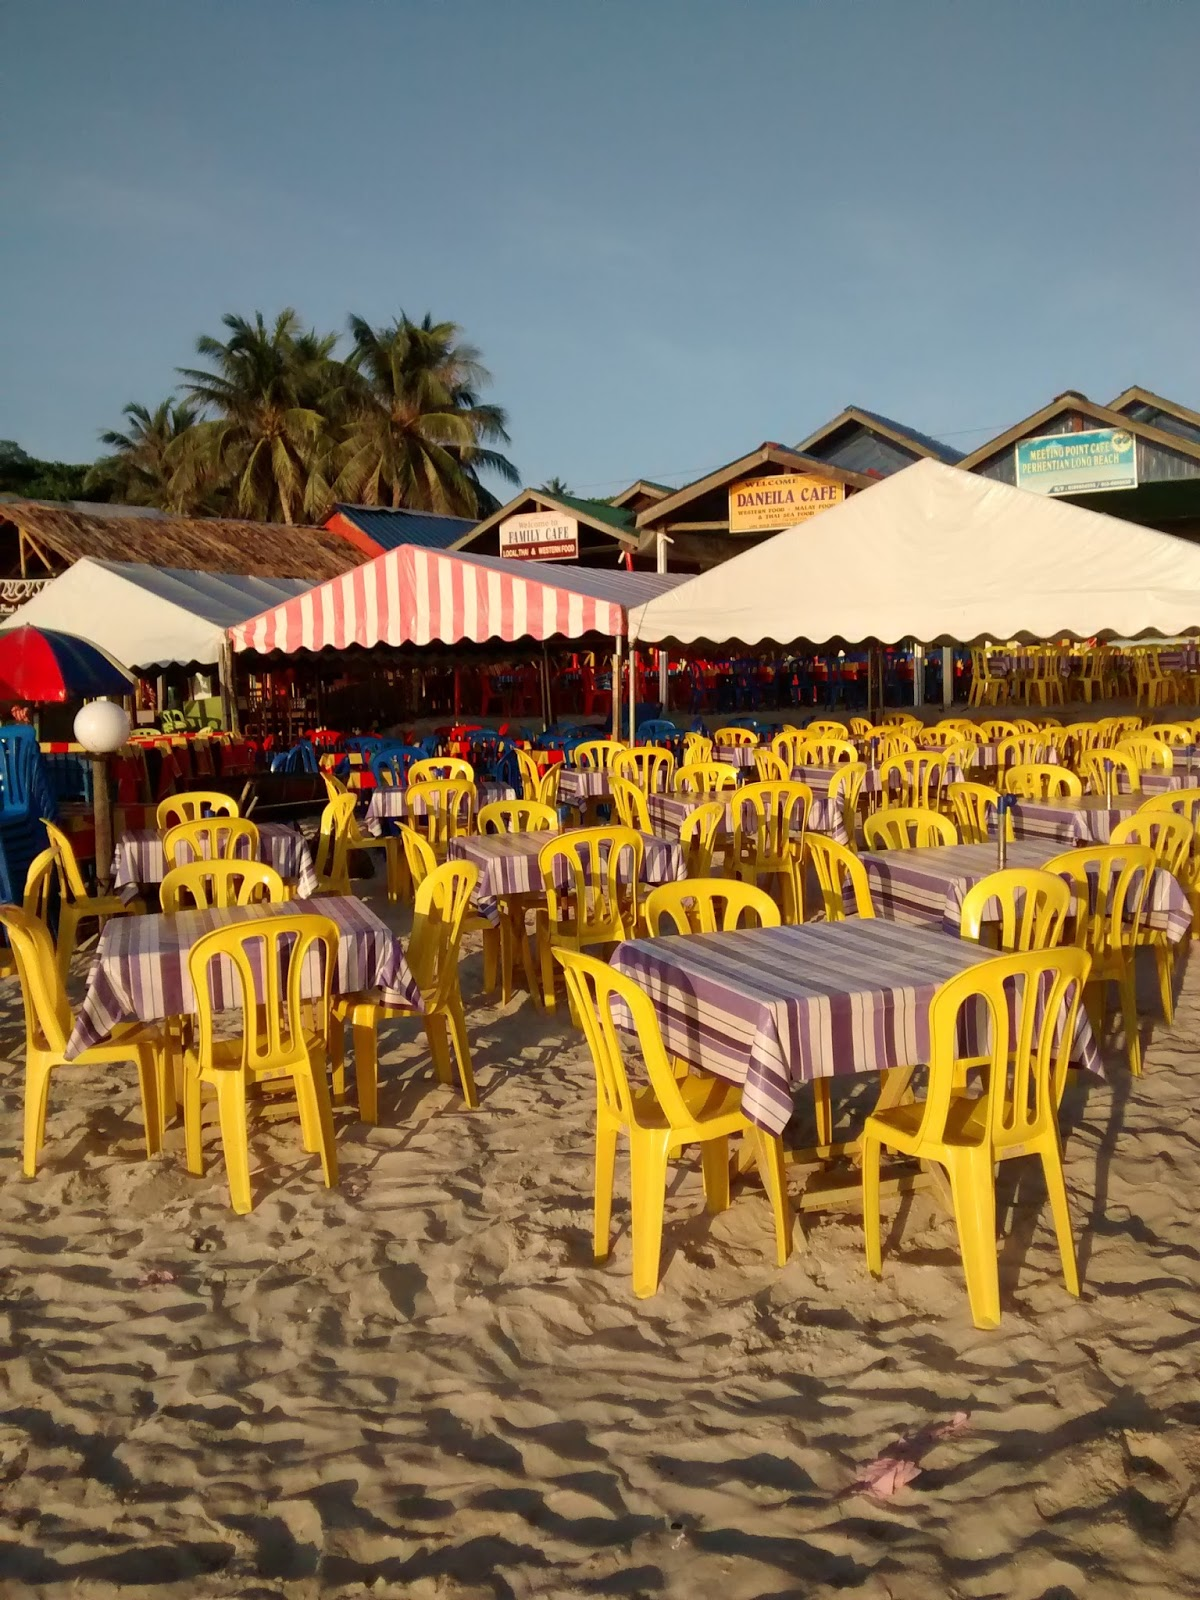 Jiaaqieats by jia qi guide to perhentian kecil there are quite a number of restaurants located along the stretch of long beach but i wouldnt say youll be spoiled with choices the food choices m4hsunfo